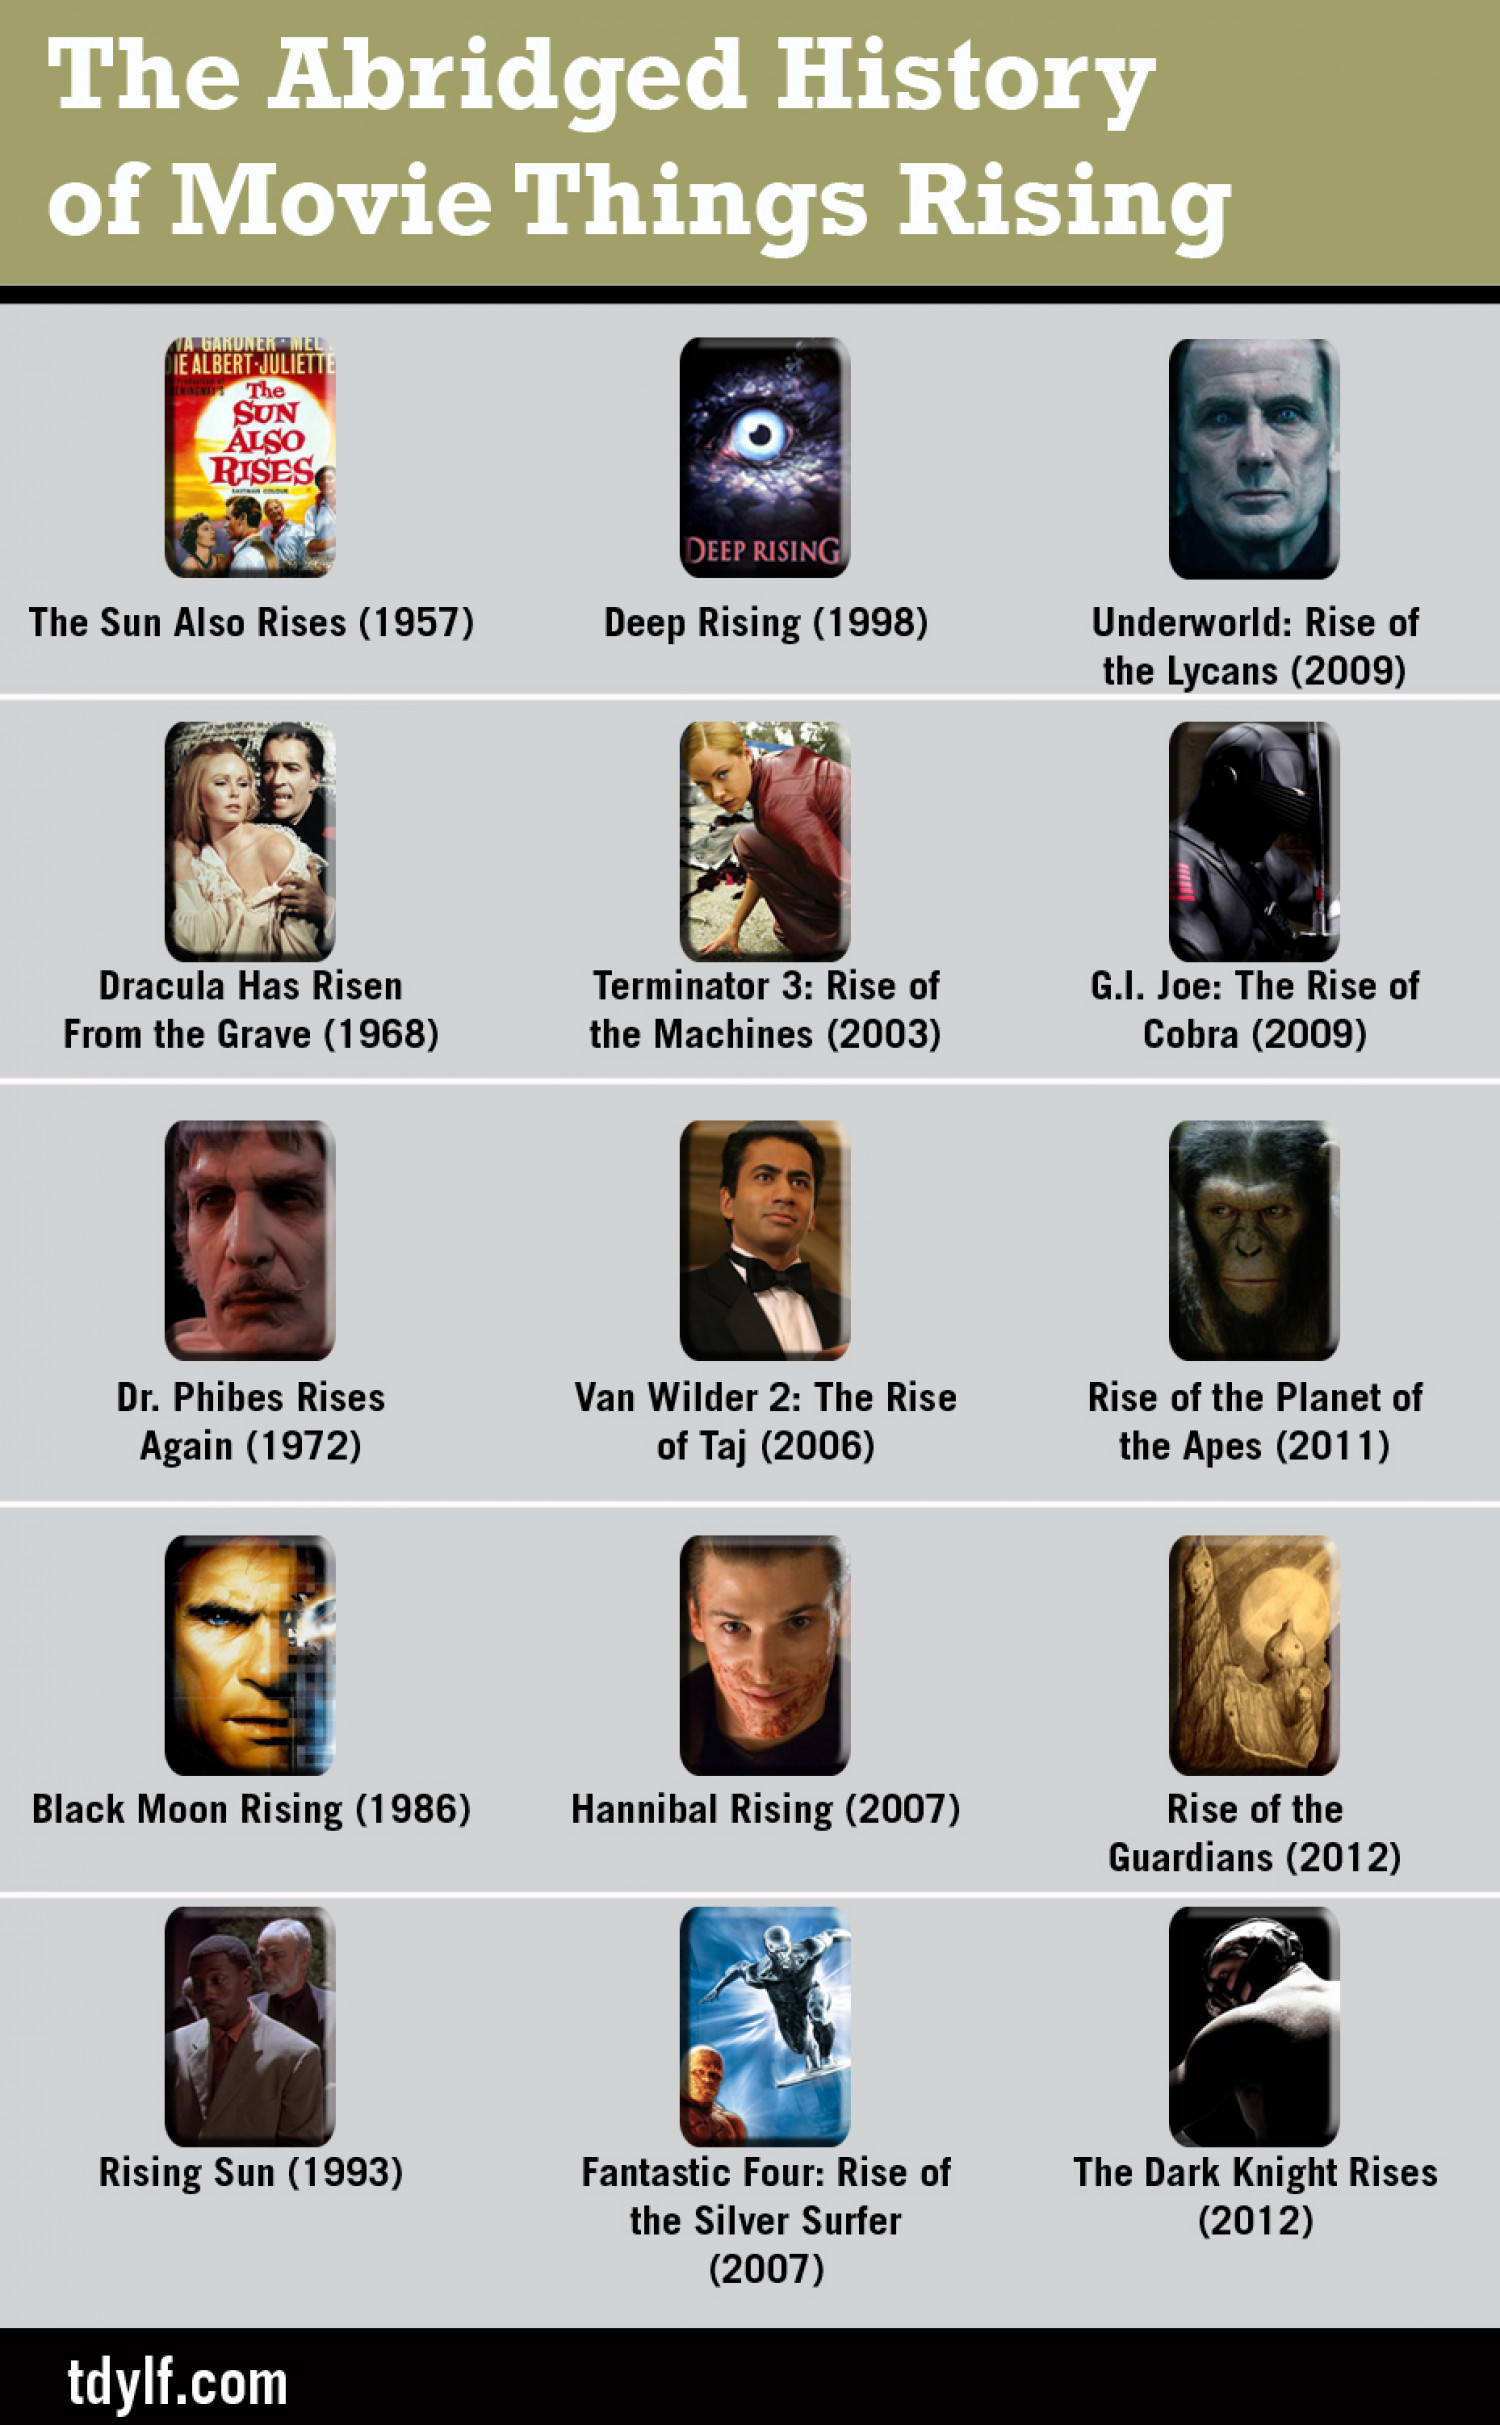 The Abridged History of Movie Things Rising Infographic